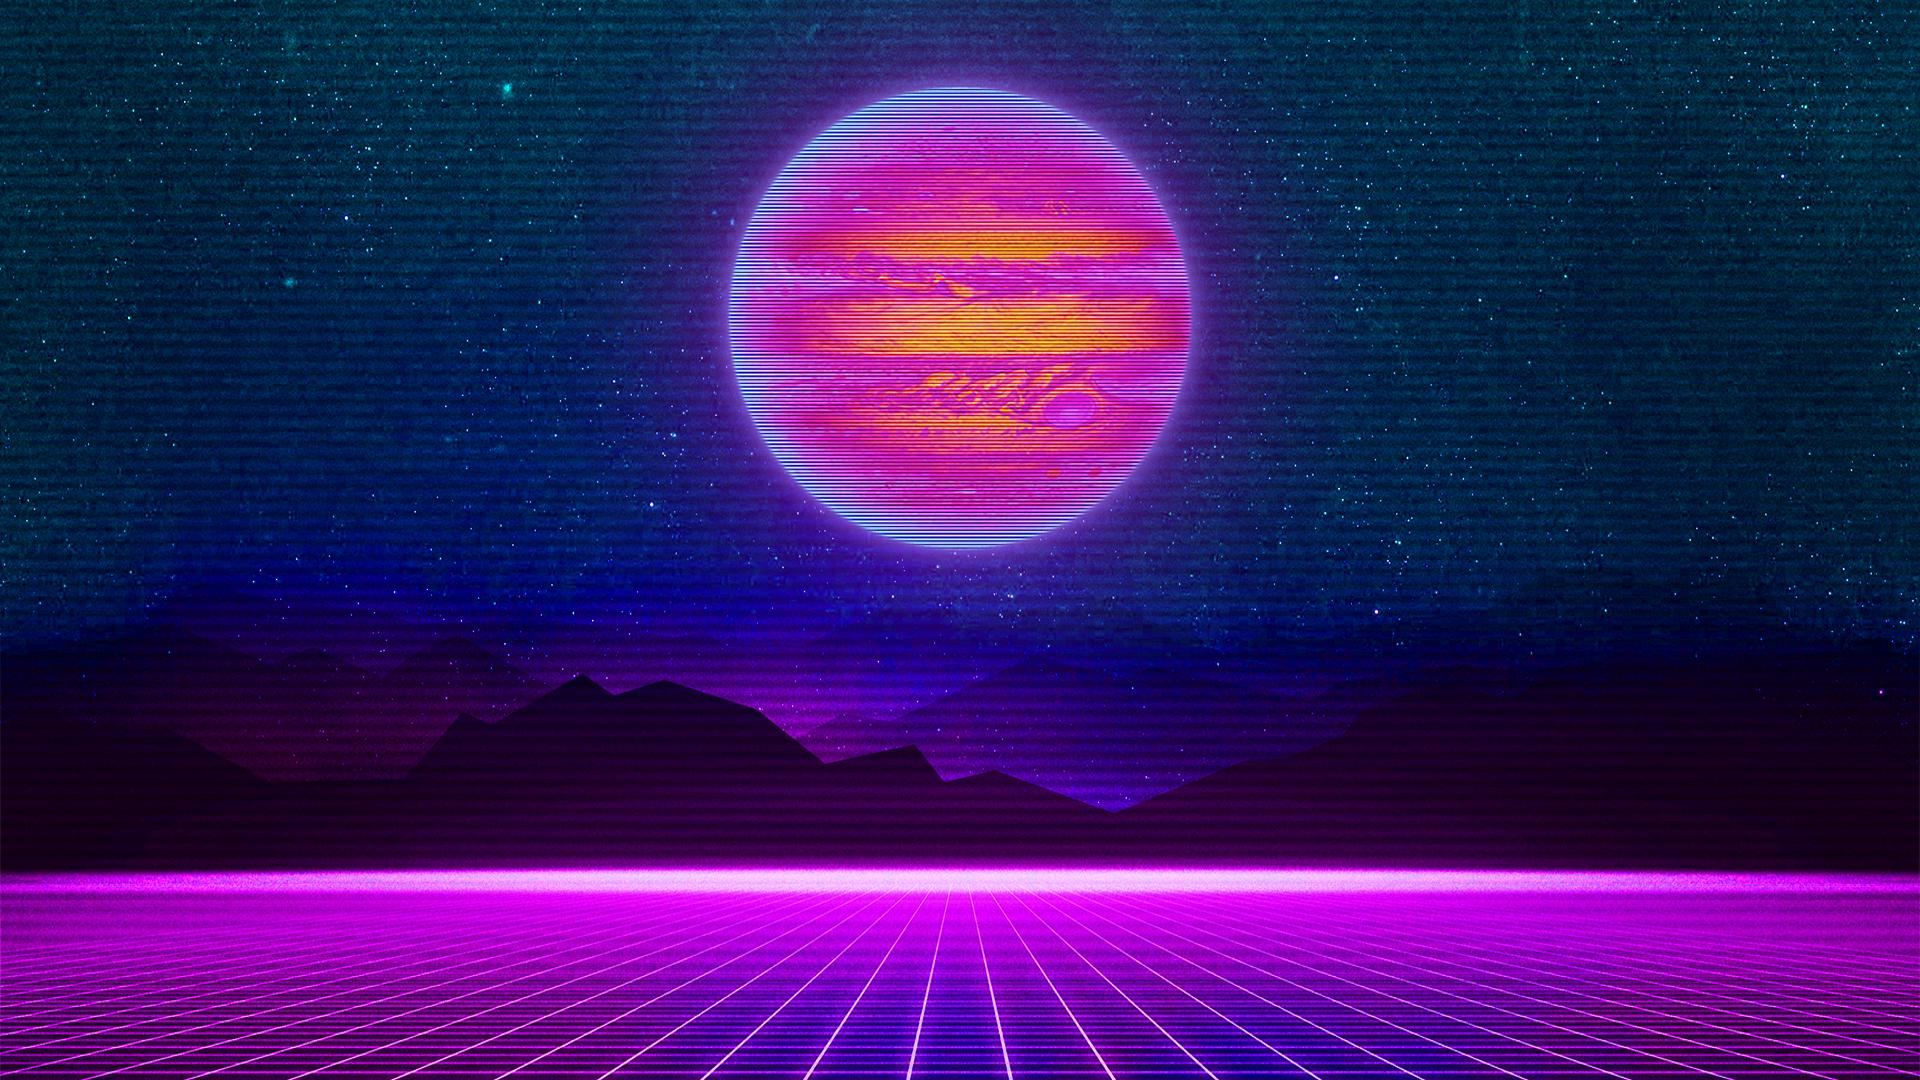 Retro Wave Wallpapers   Top Retro Wave Backgrounds 1920x1080